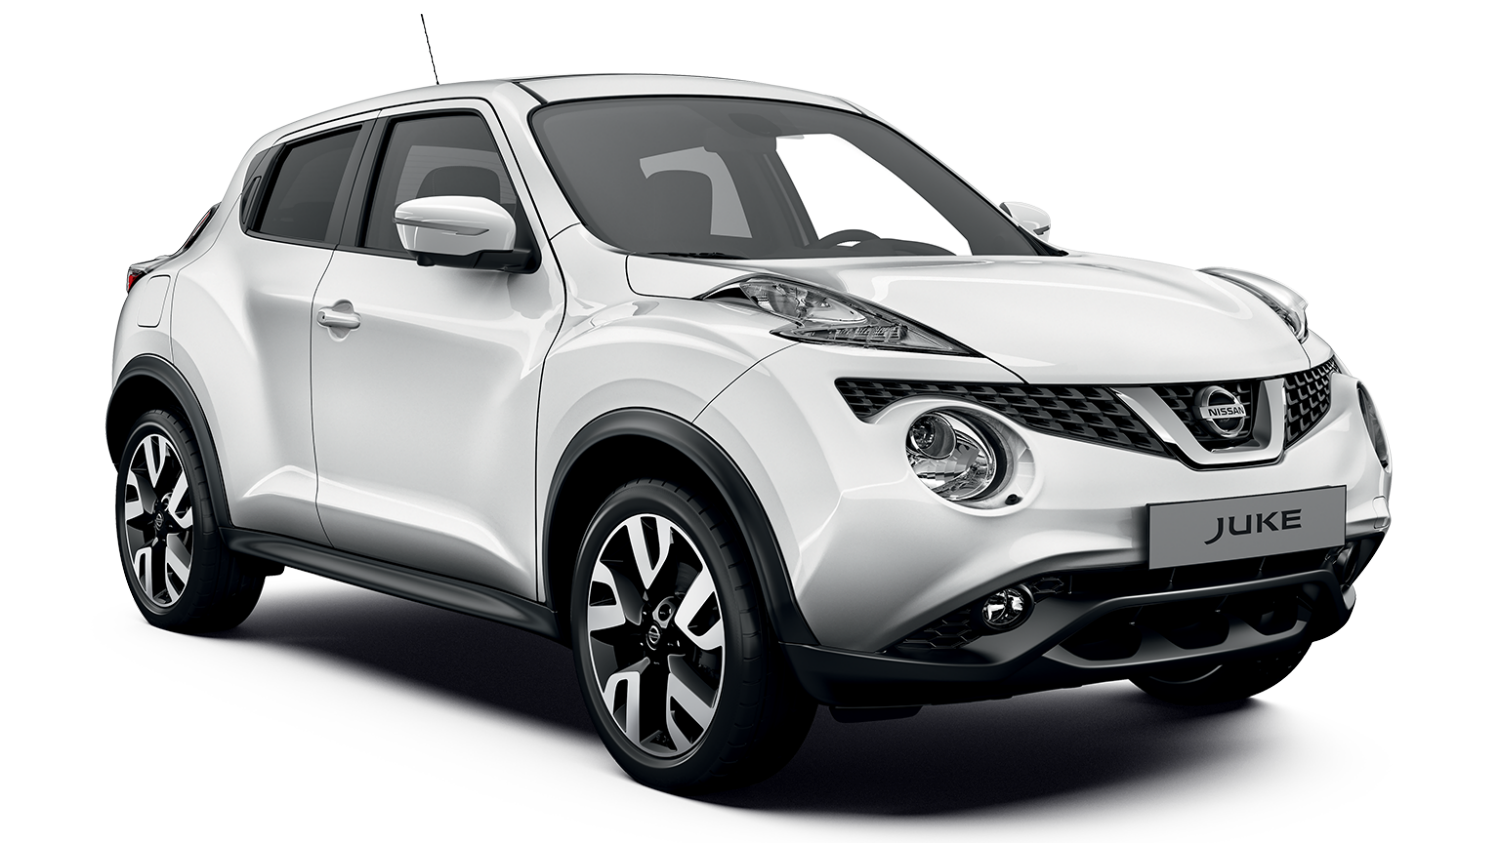 specifiche di prezzo nissan juke piccolo crossover nissan. Black Bedroom Furniture Sets. Home Design Ideas